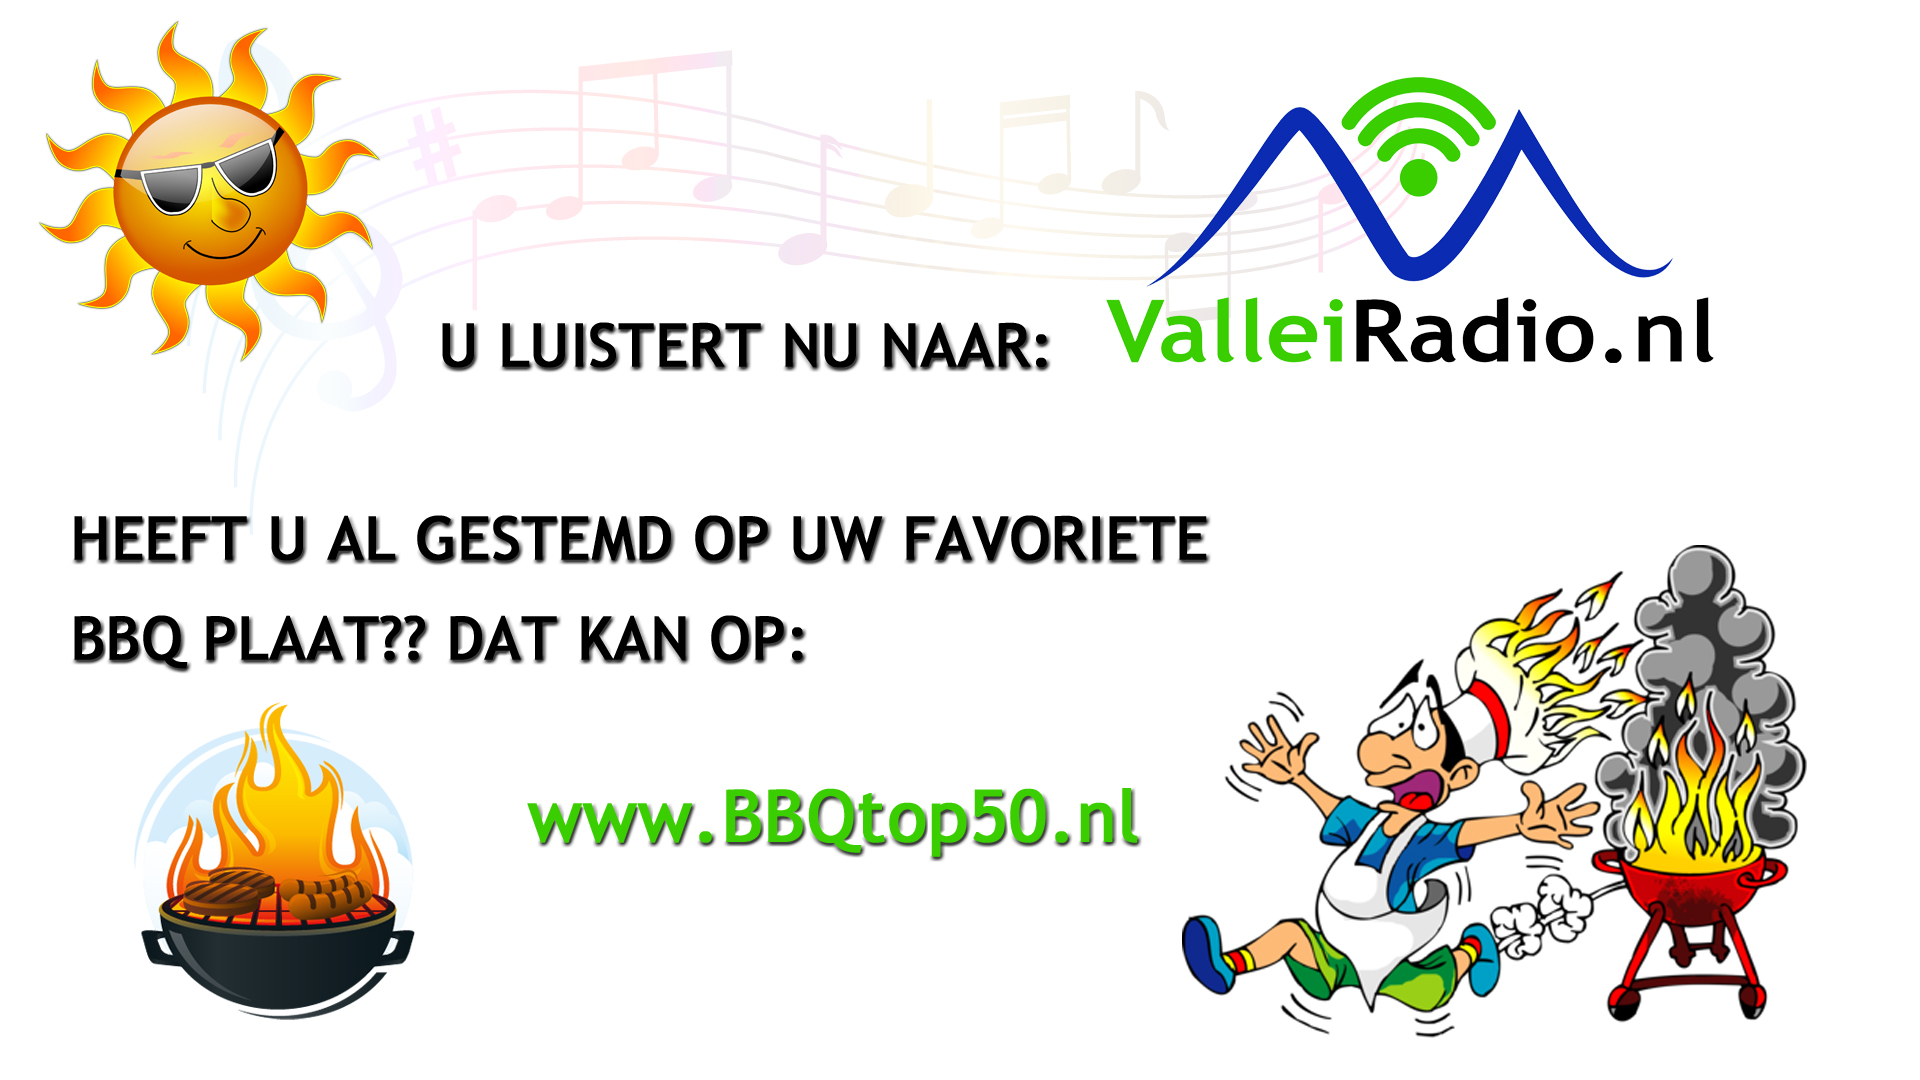 Stem op de BBQ top 50 van ValleiRadio